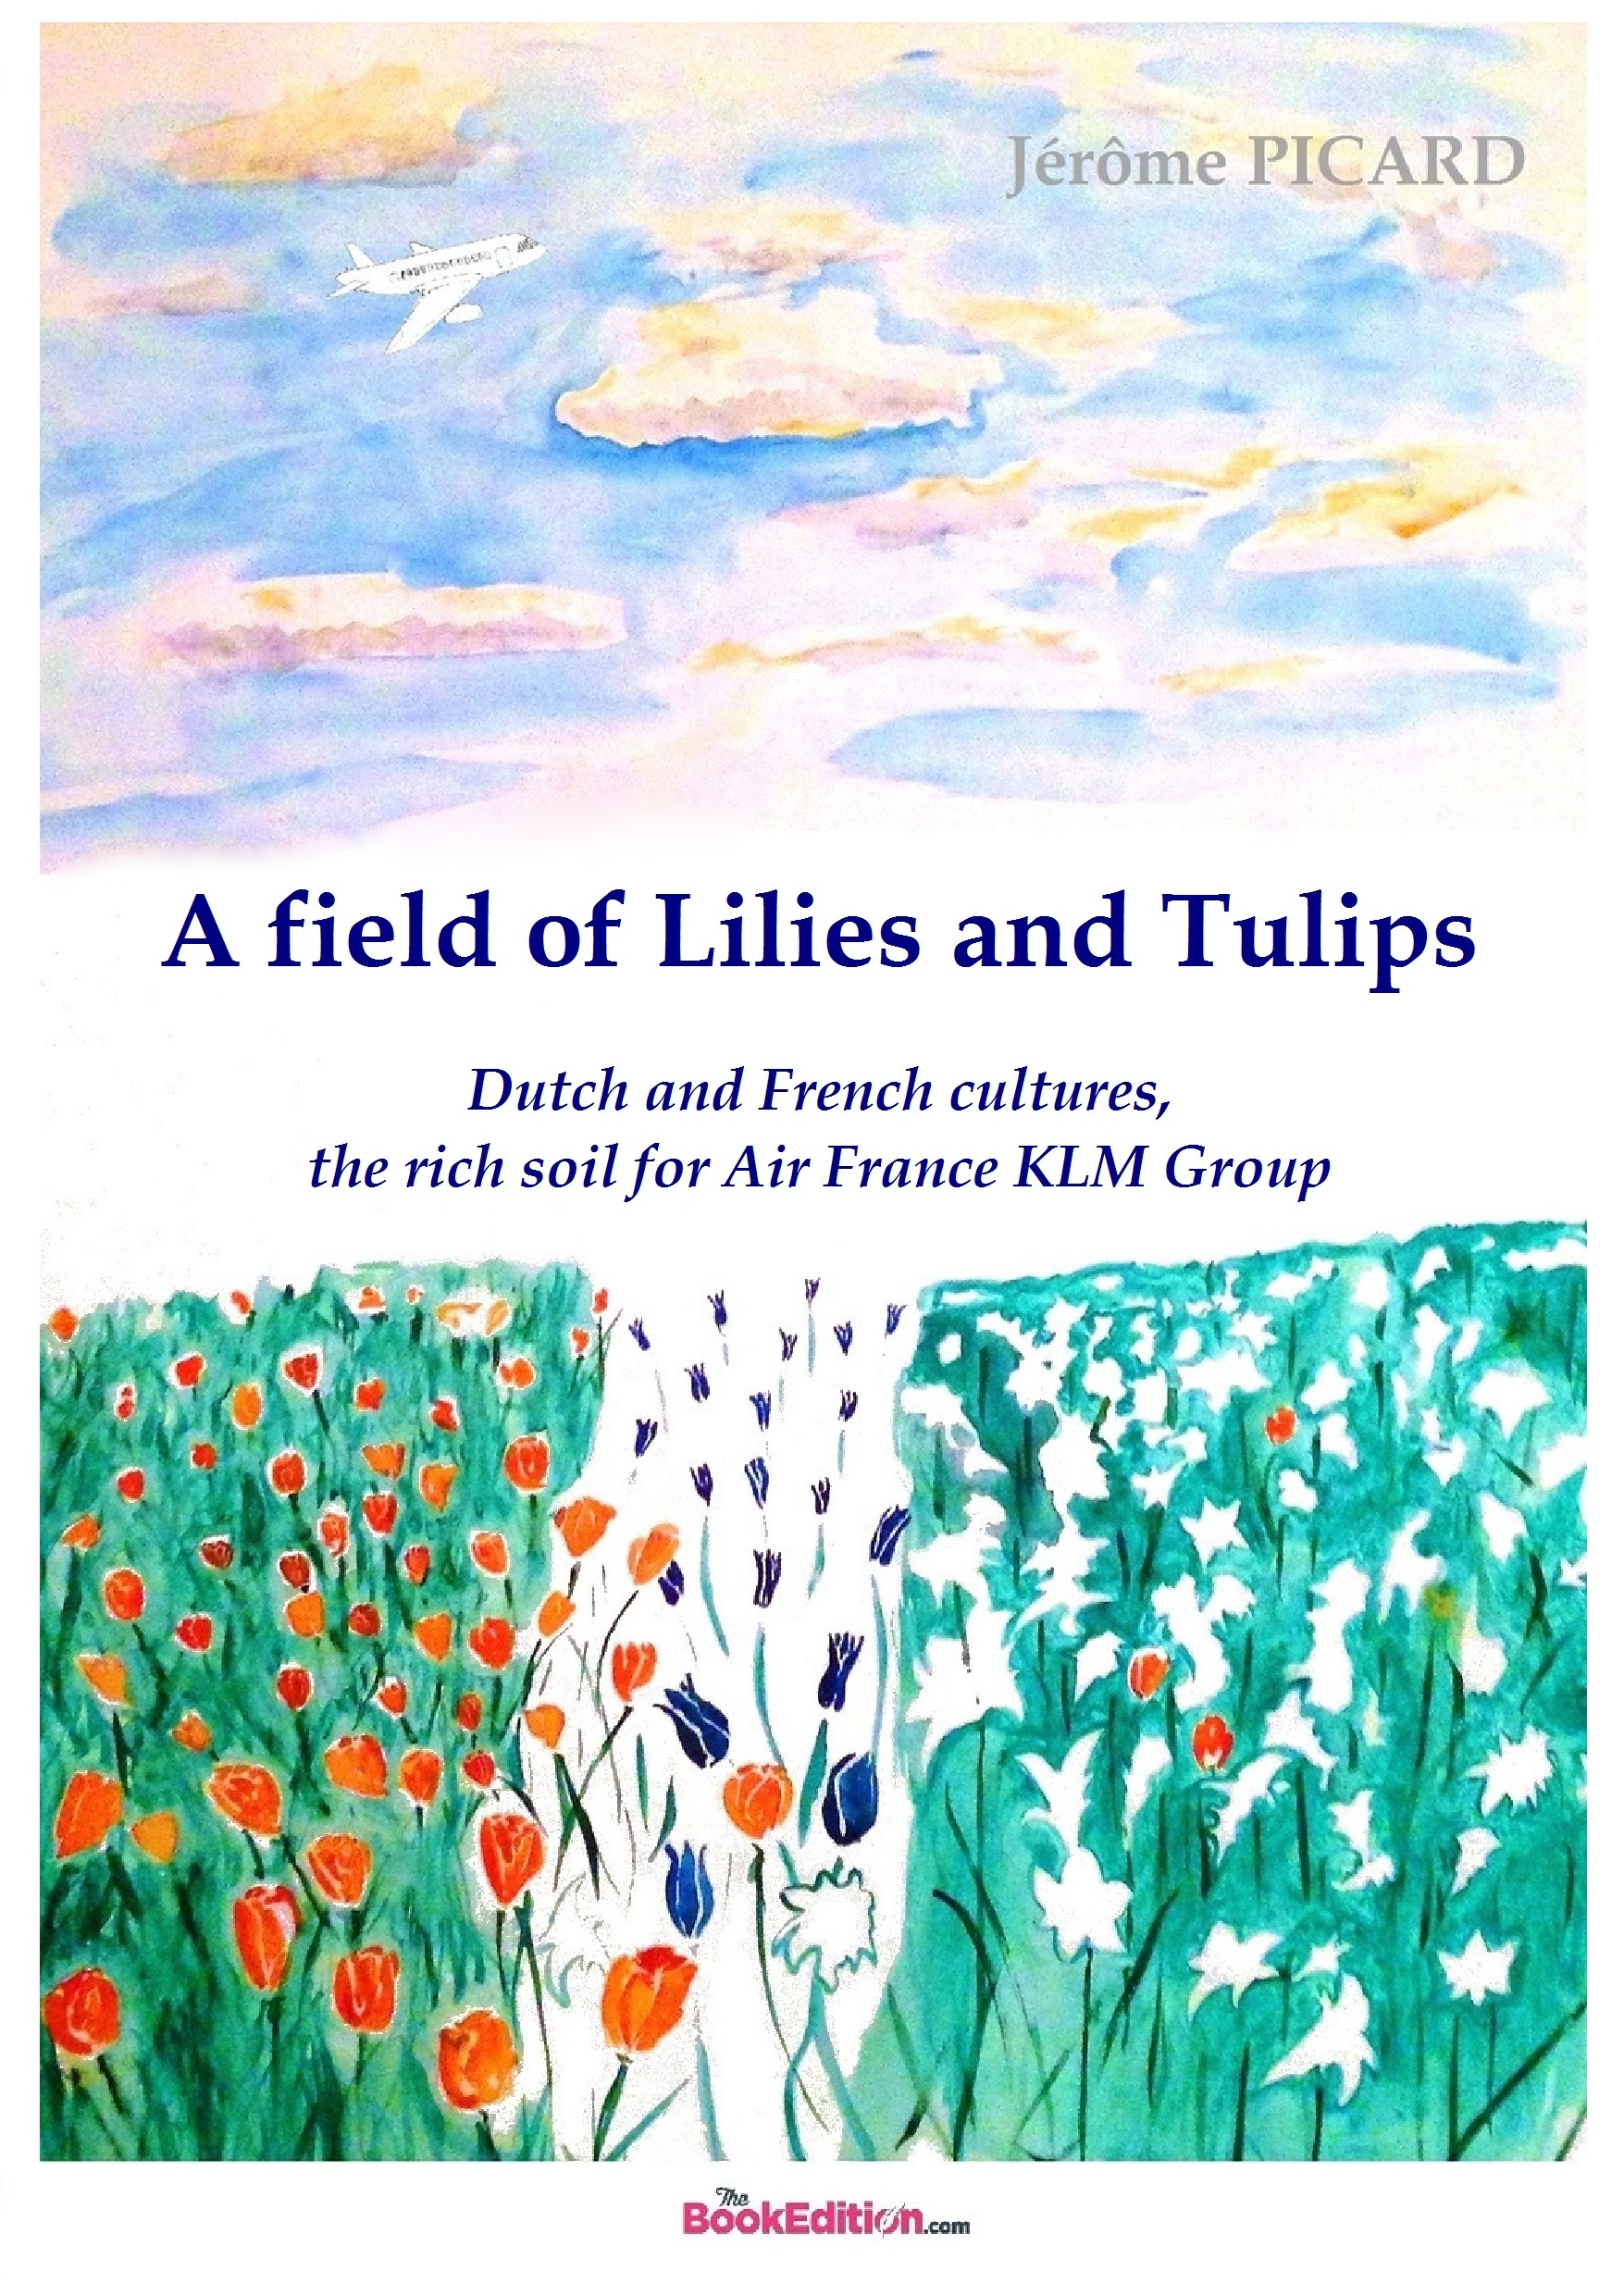 A field of Lilies and Tulips